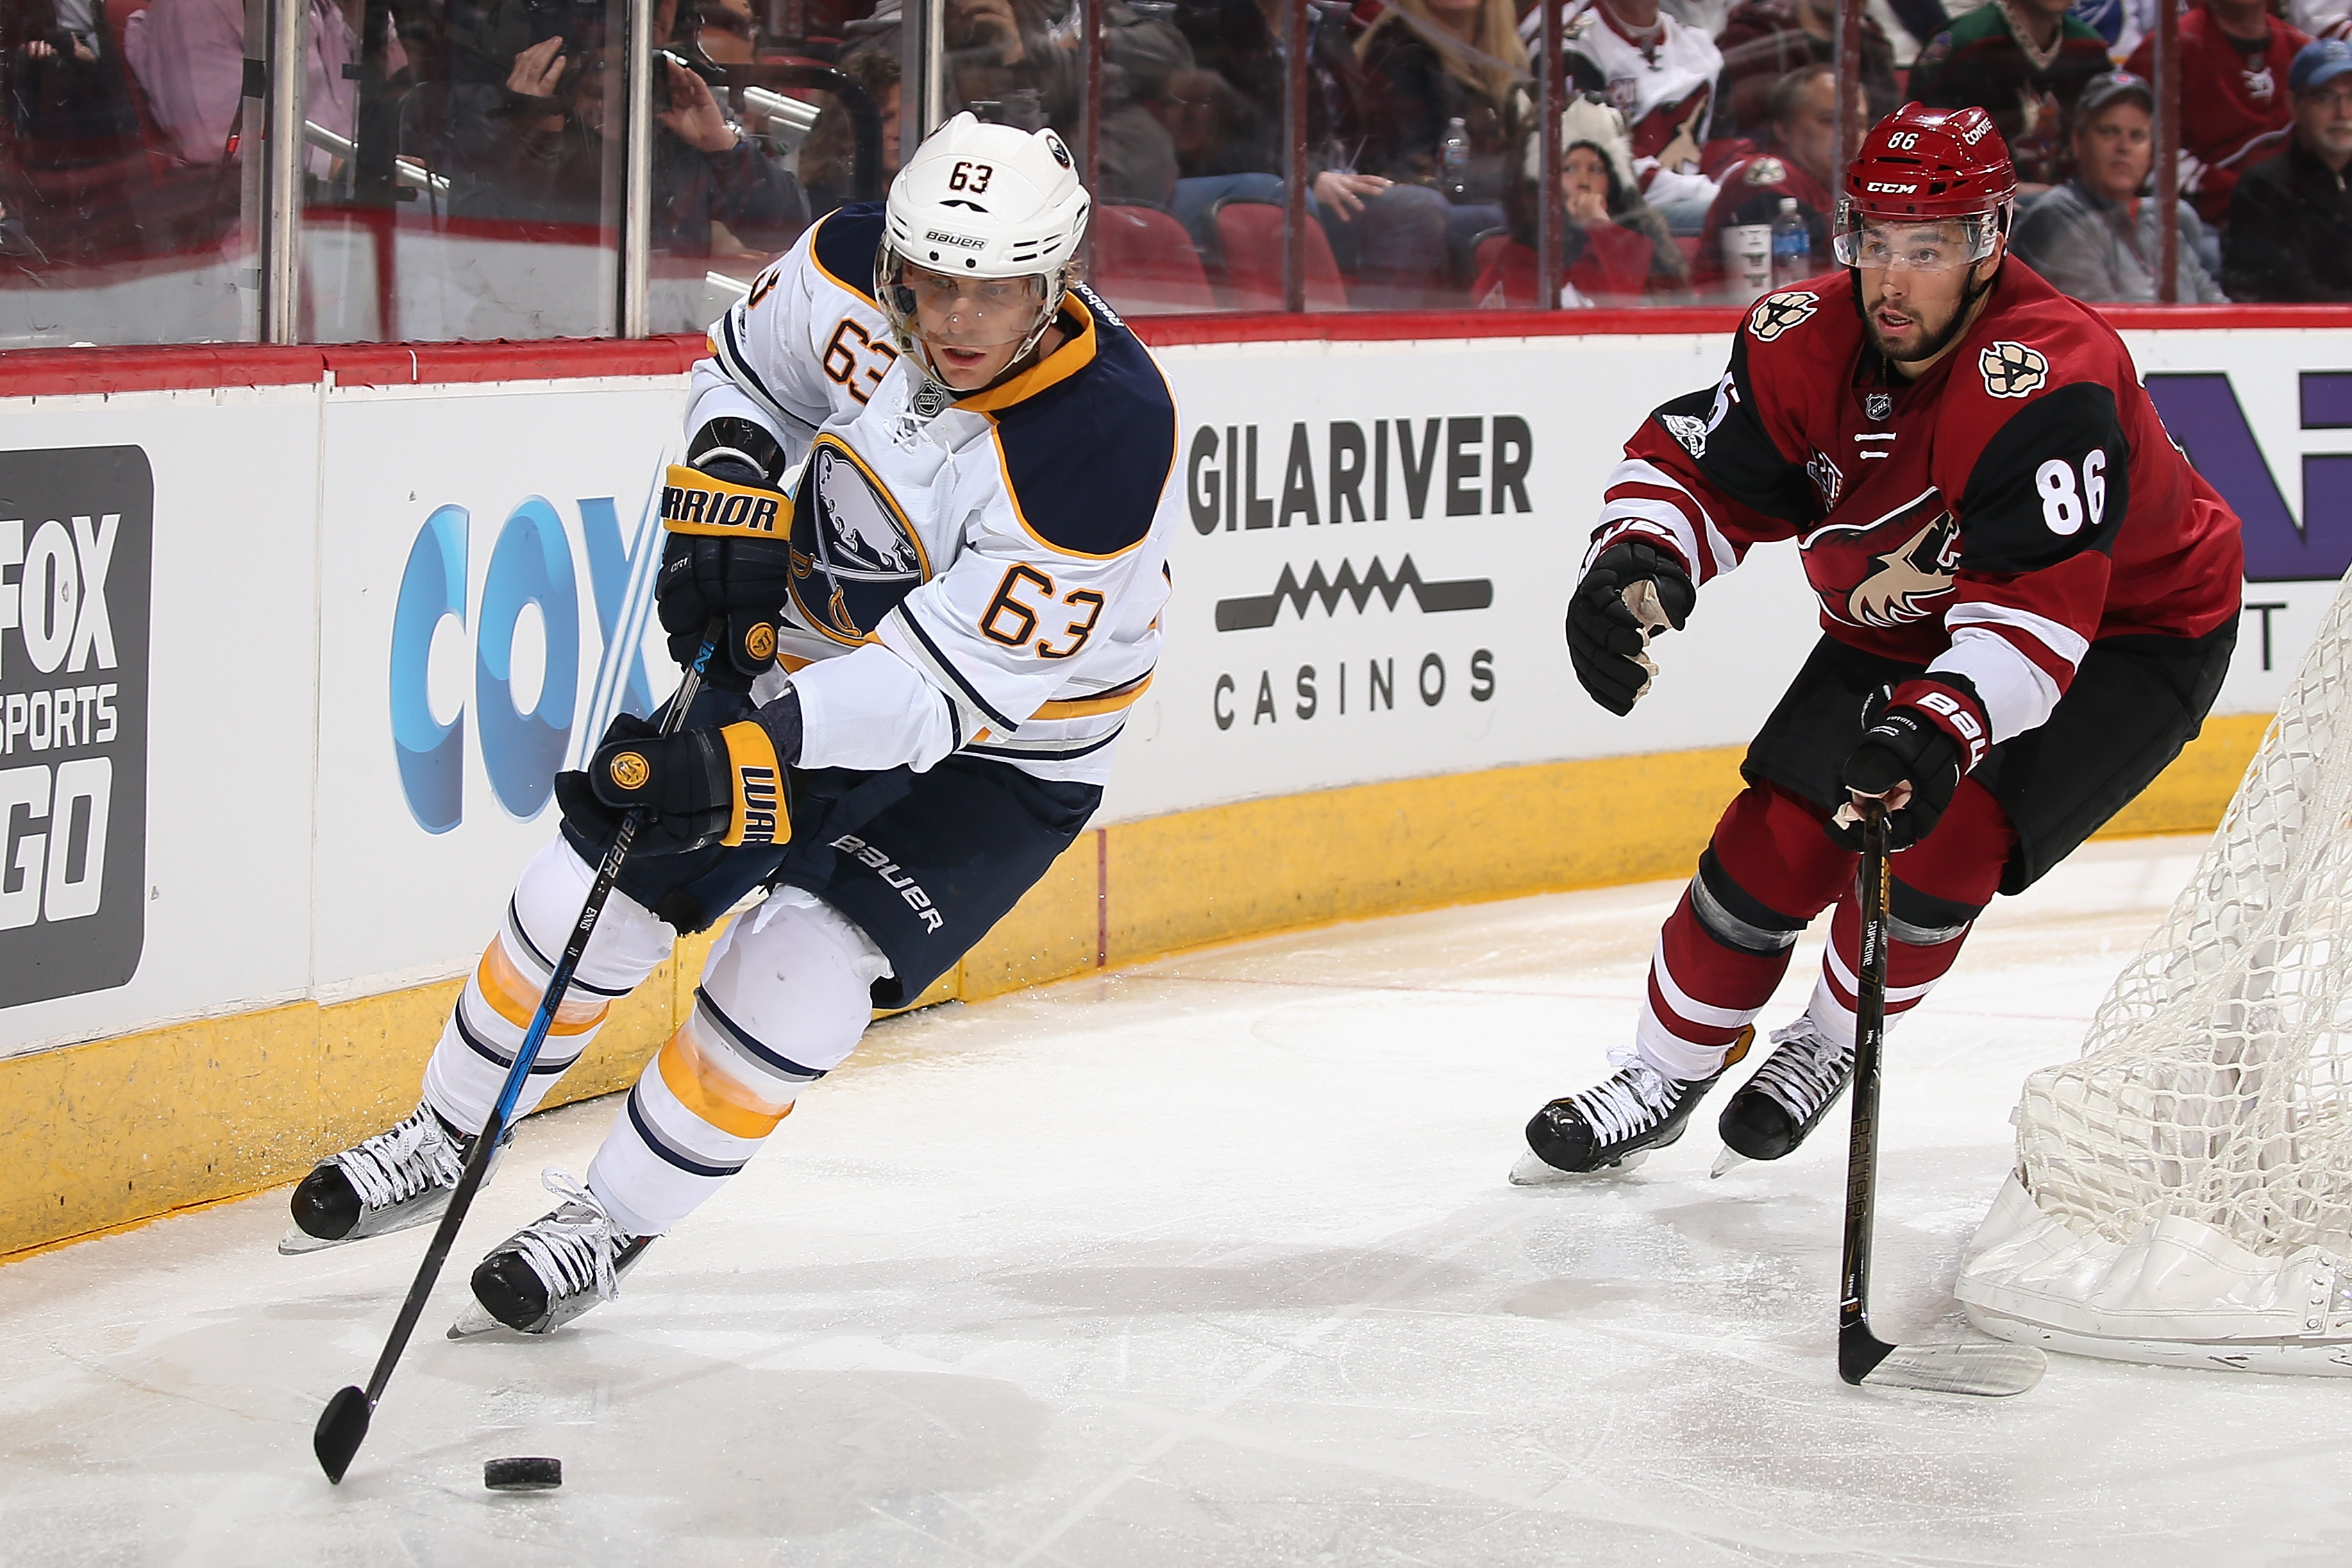 Tyler Ennis and the Sabres will look to avenge Sunday's loss to Josh Jooris and Arizona. (Getty Images)